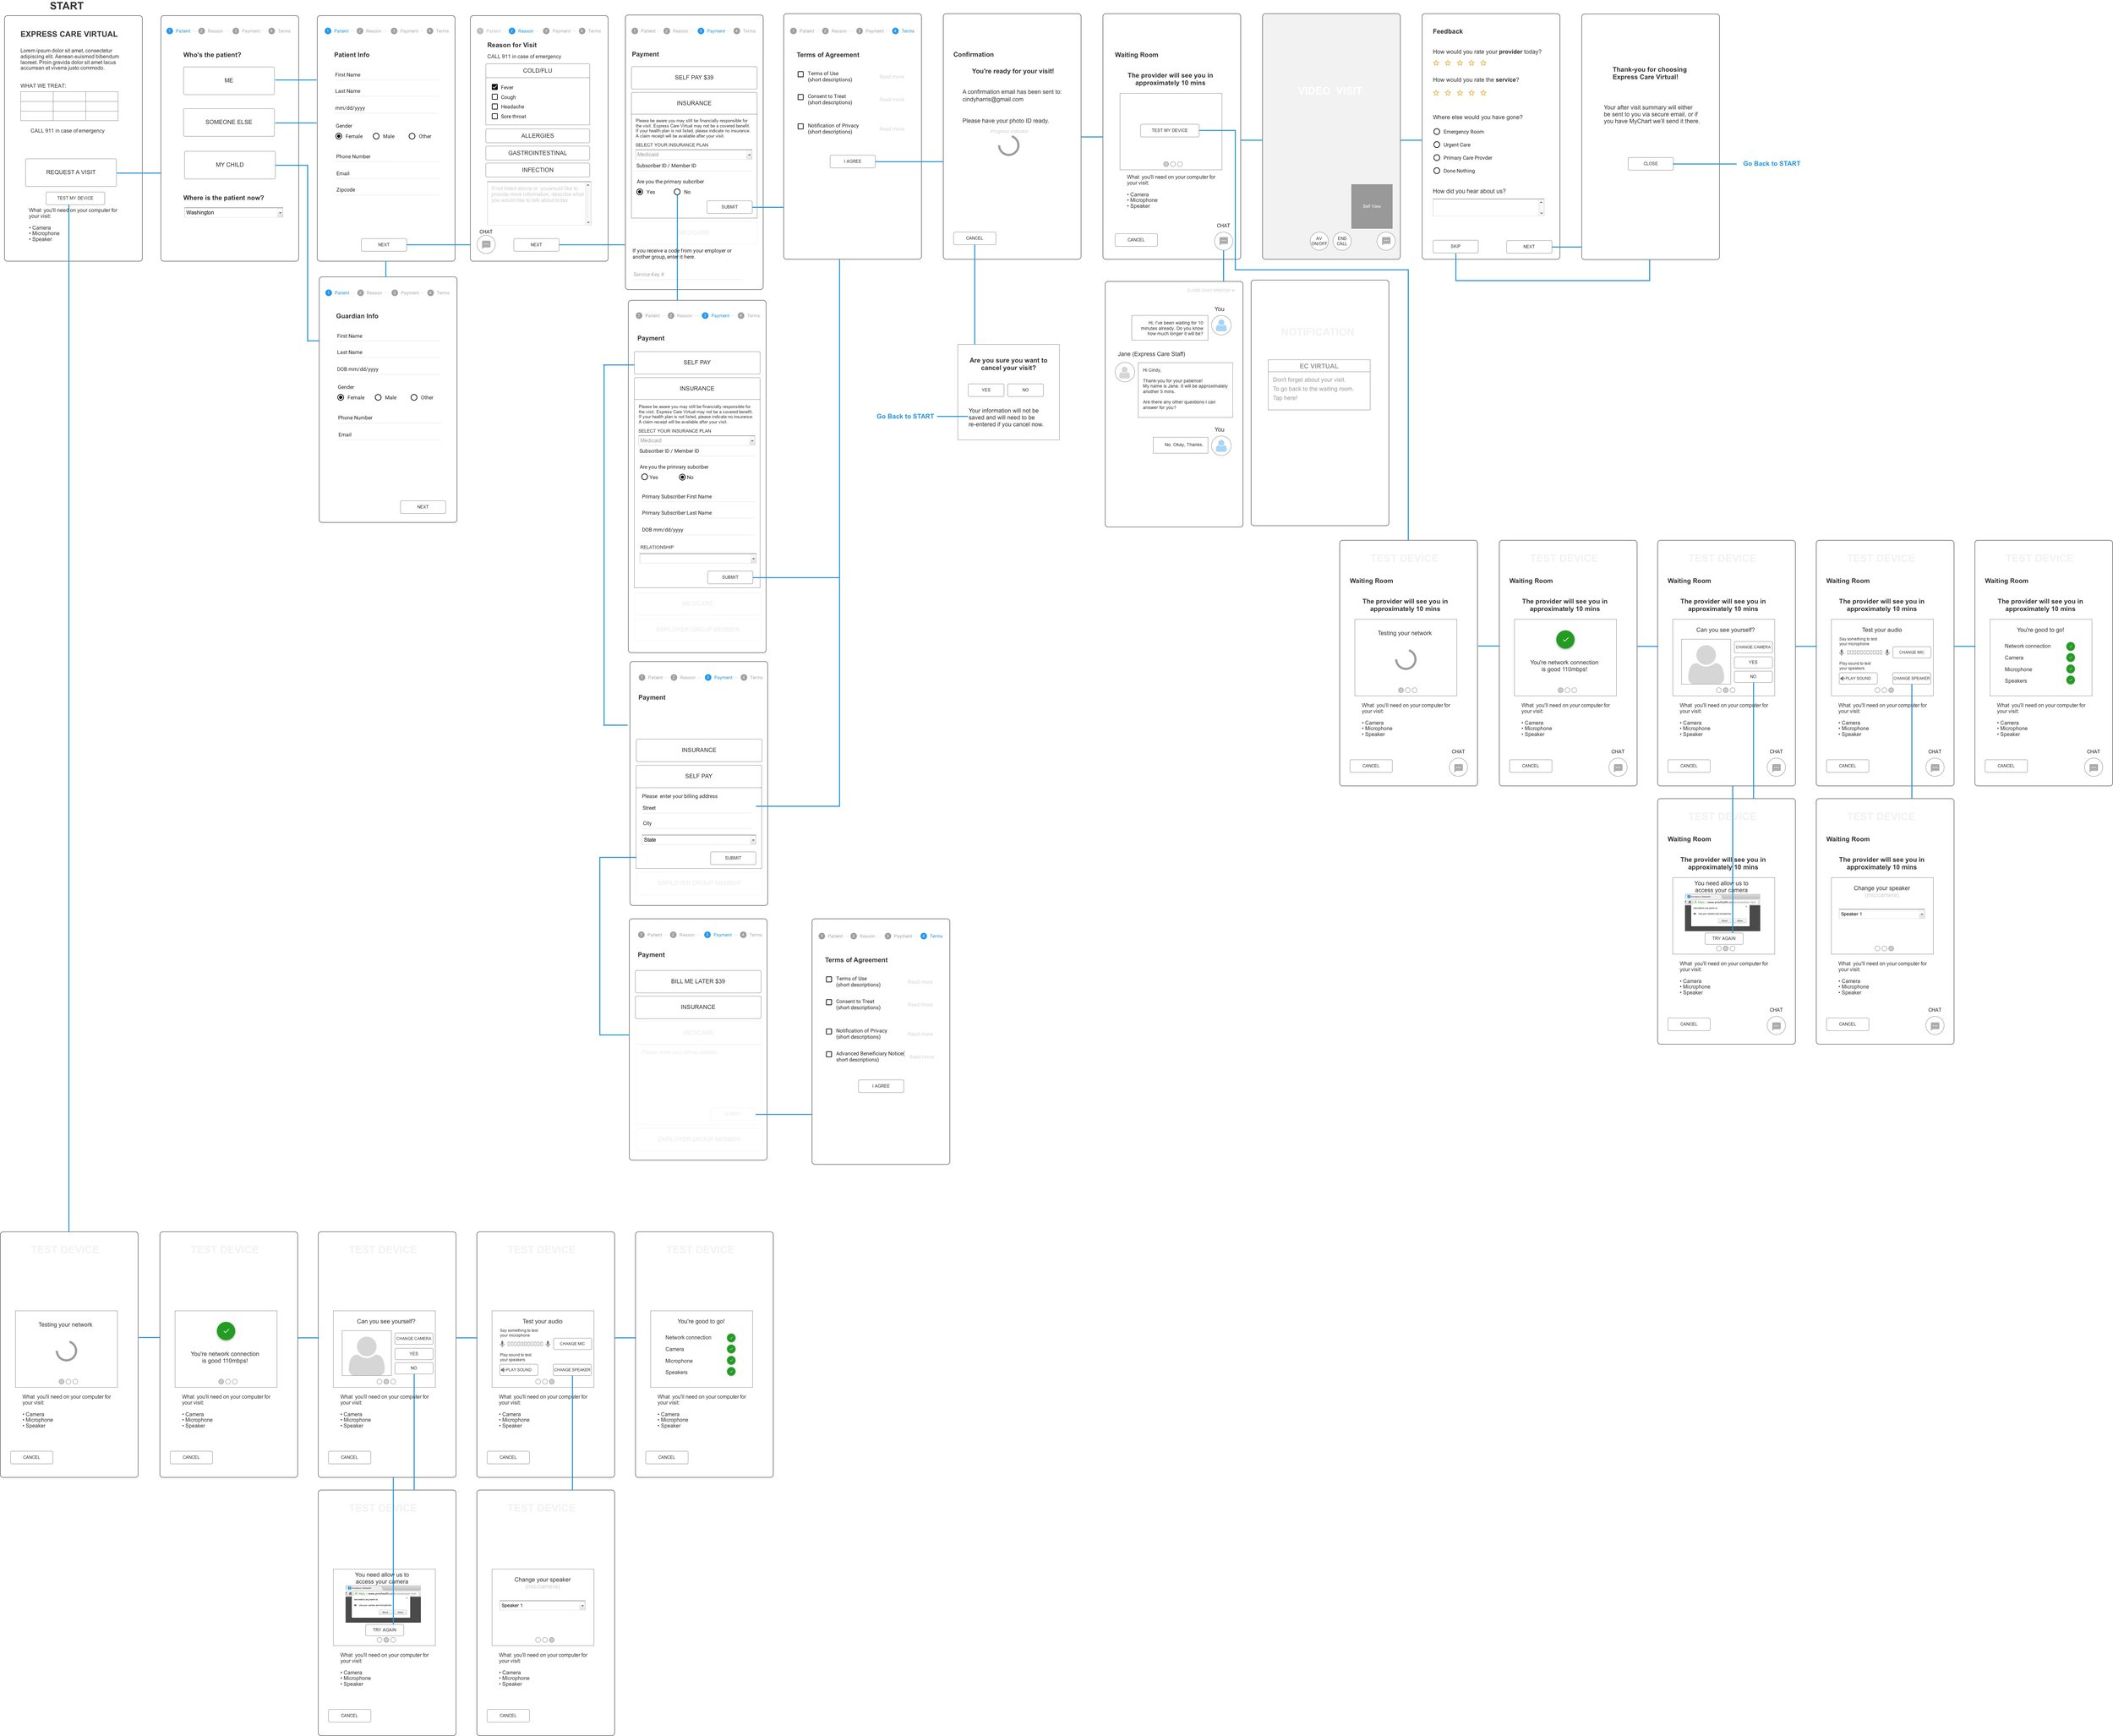 Collaborated with Sunny Lee to develop mobile wireframes for video visits.